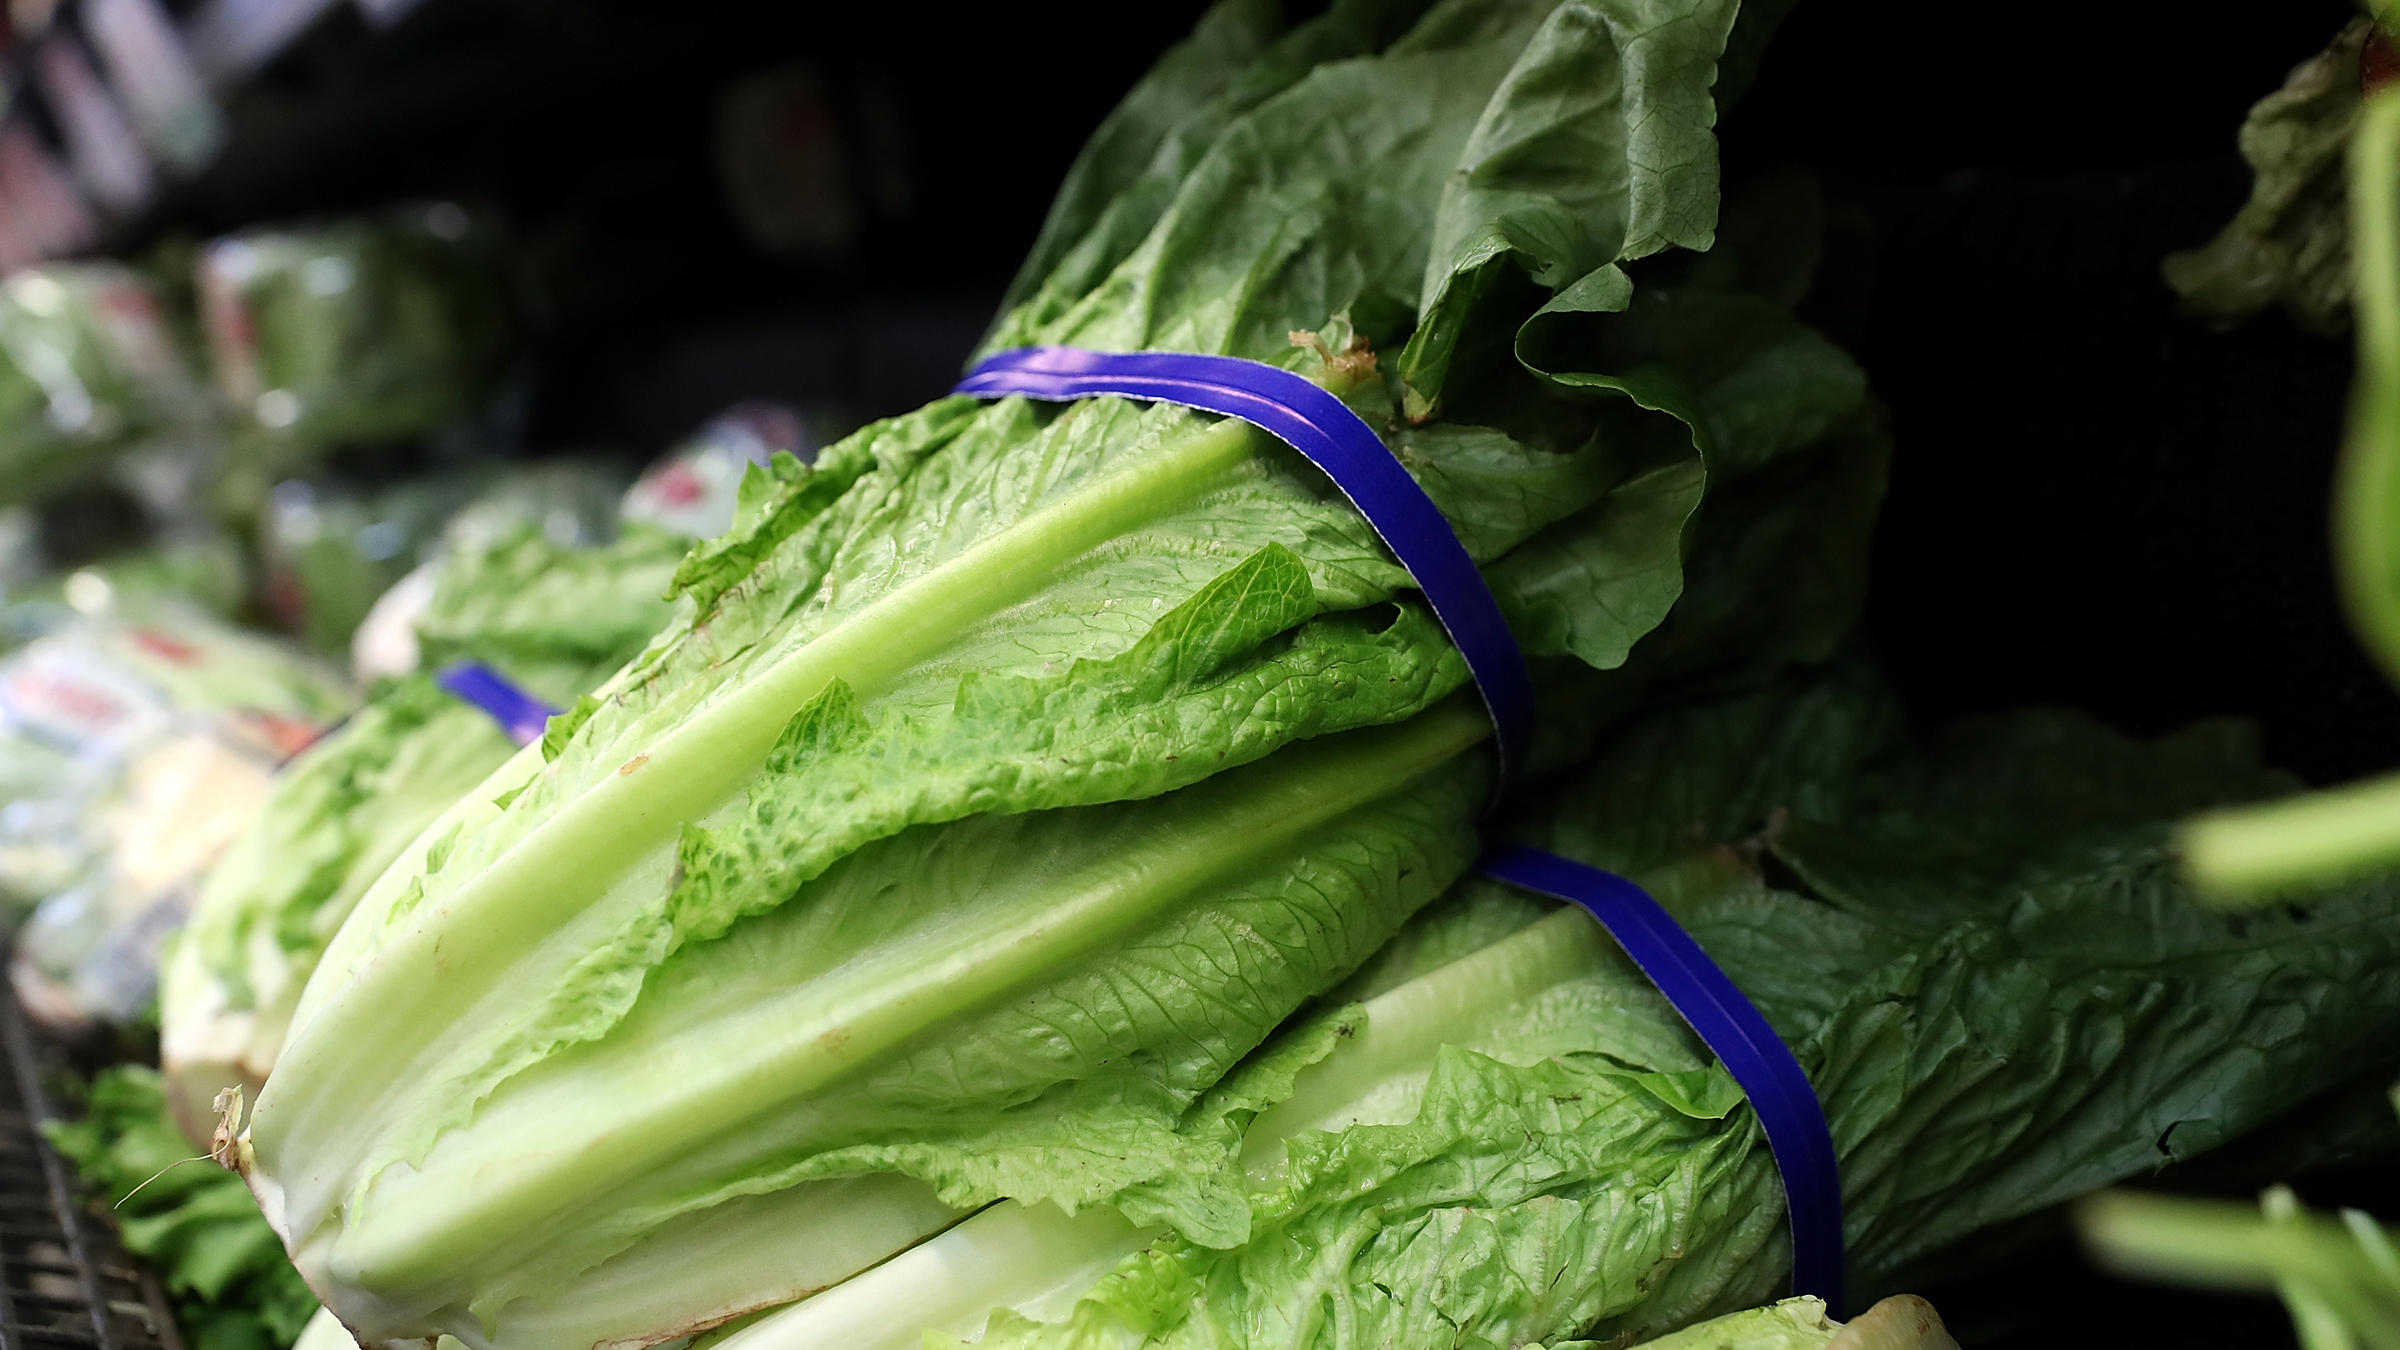 Canadian consumers warned of outbreak of E. coli connected to romaine lettuce